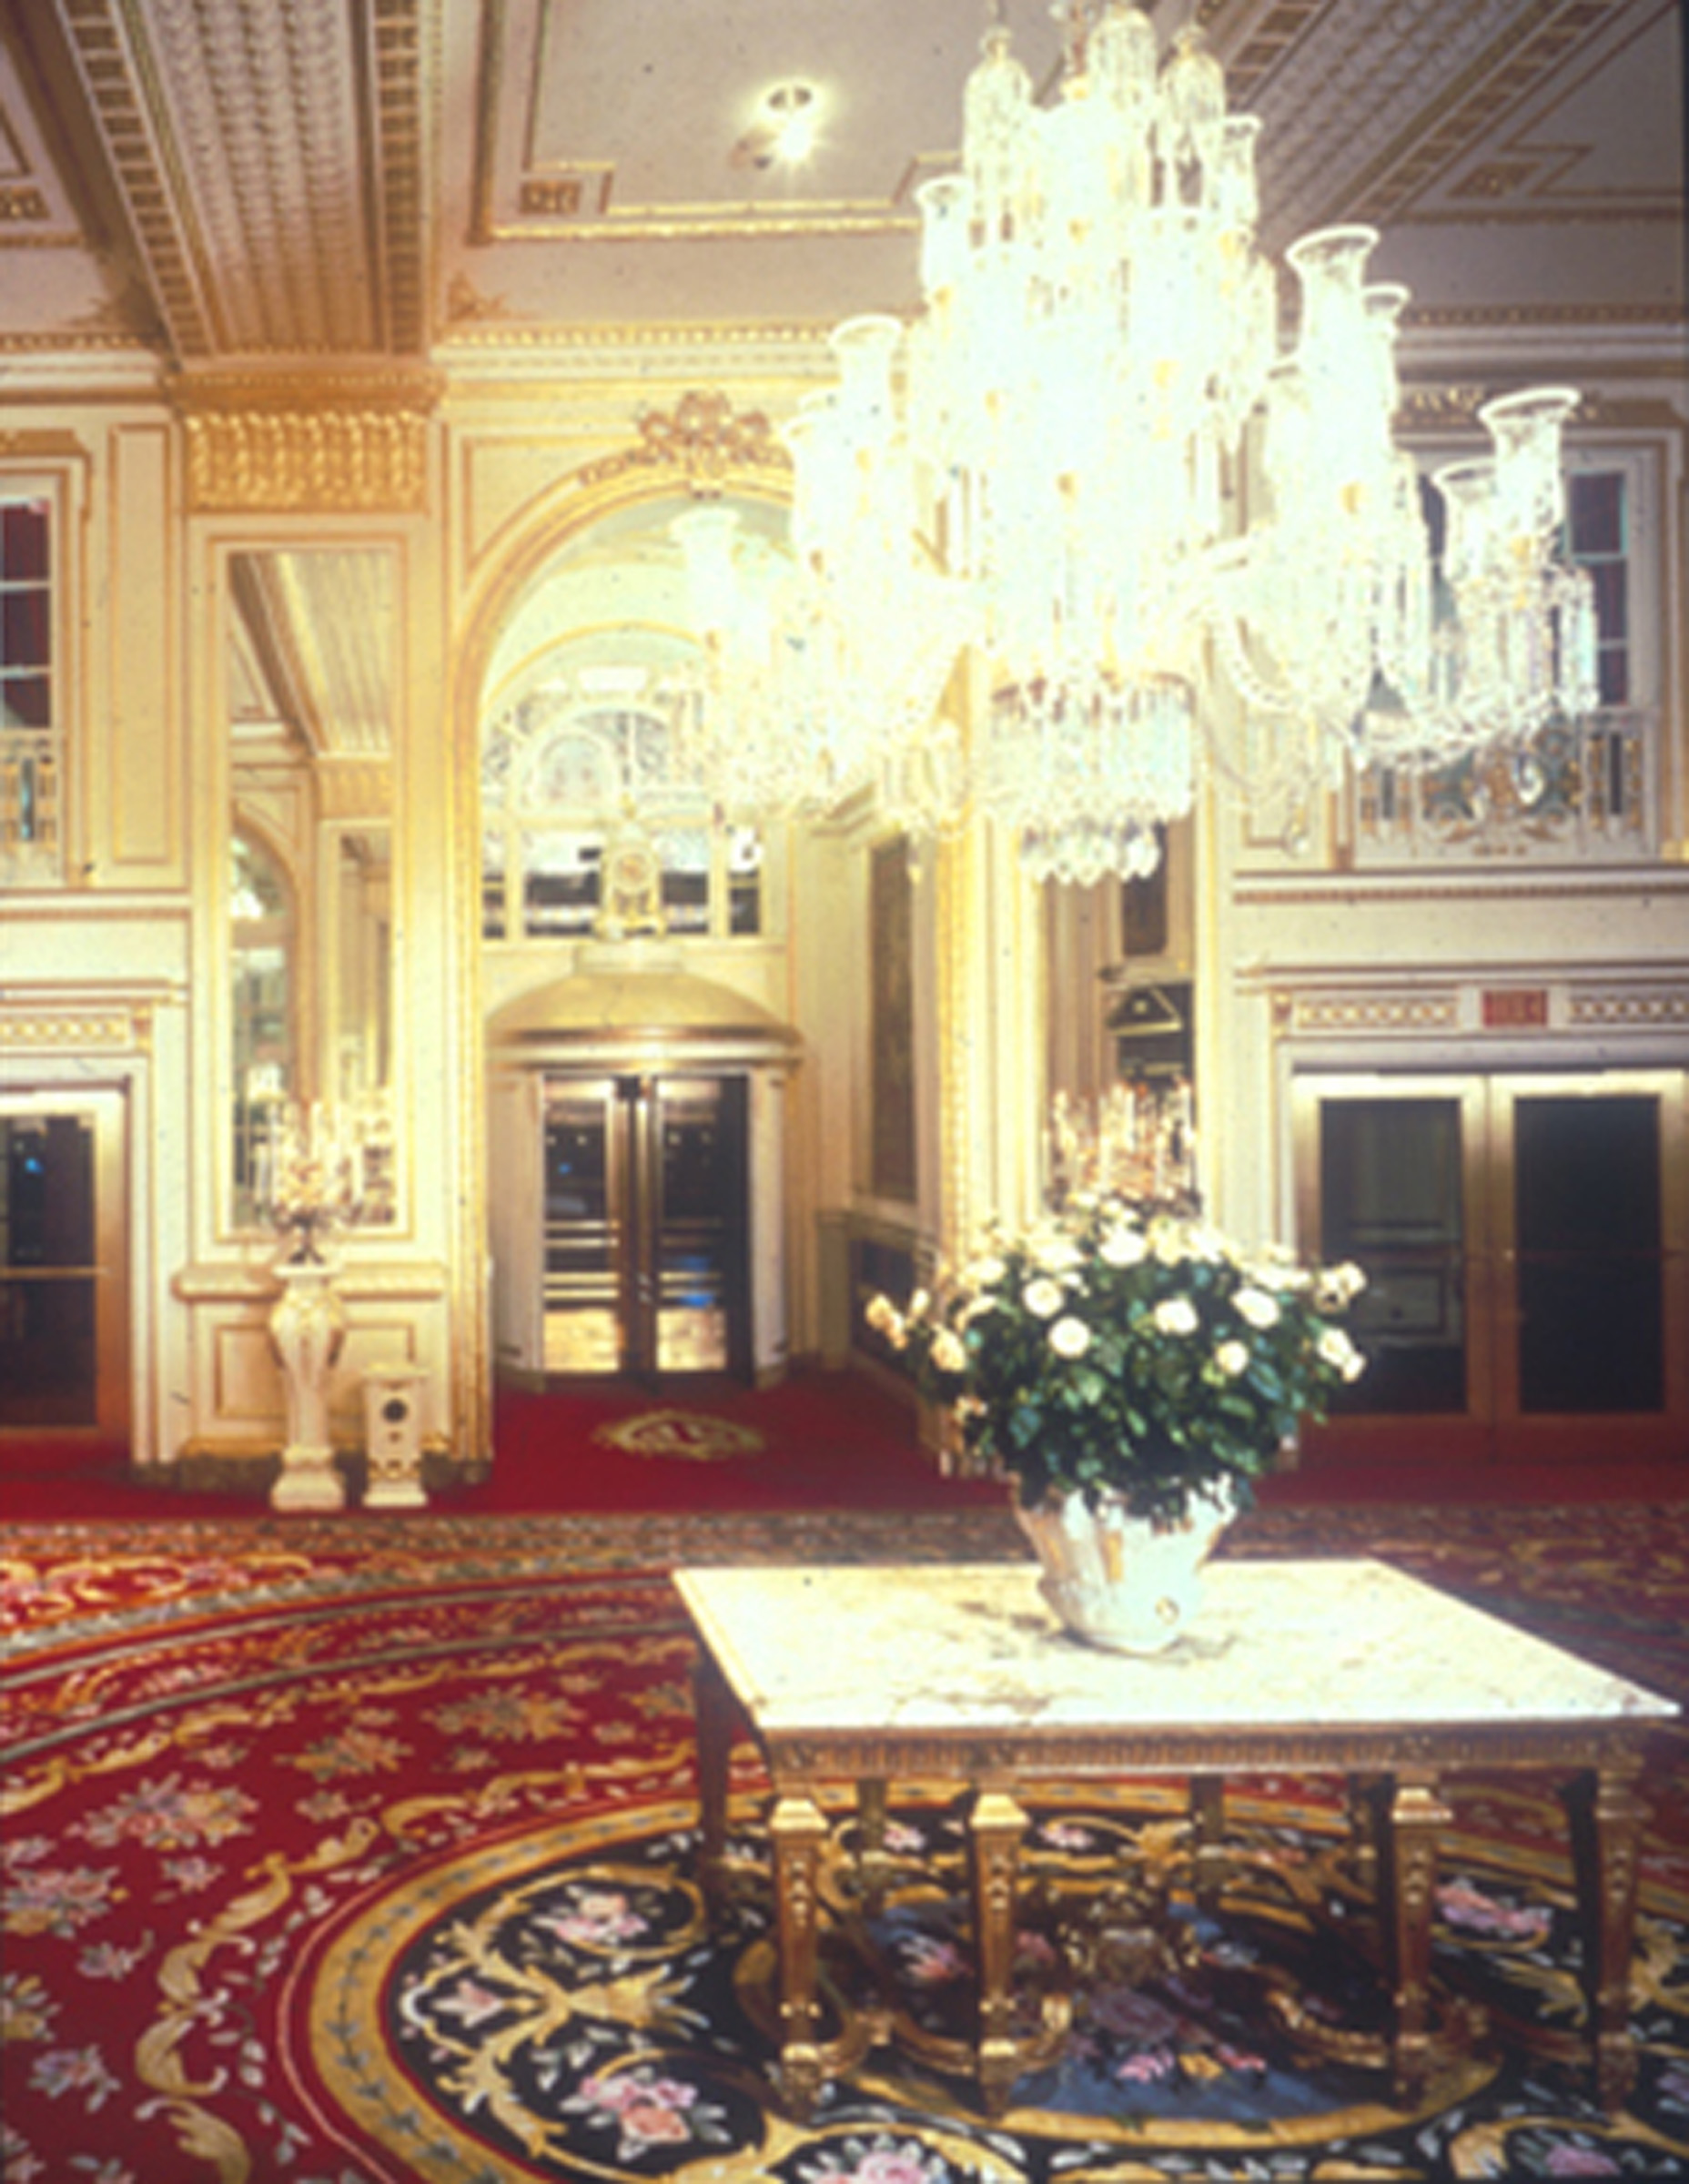 Plaza - Interior Foyer with Chandelier.jpg